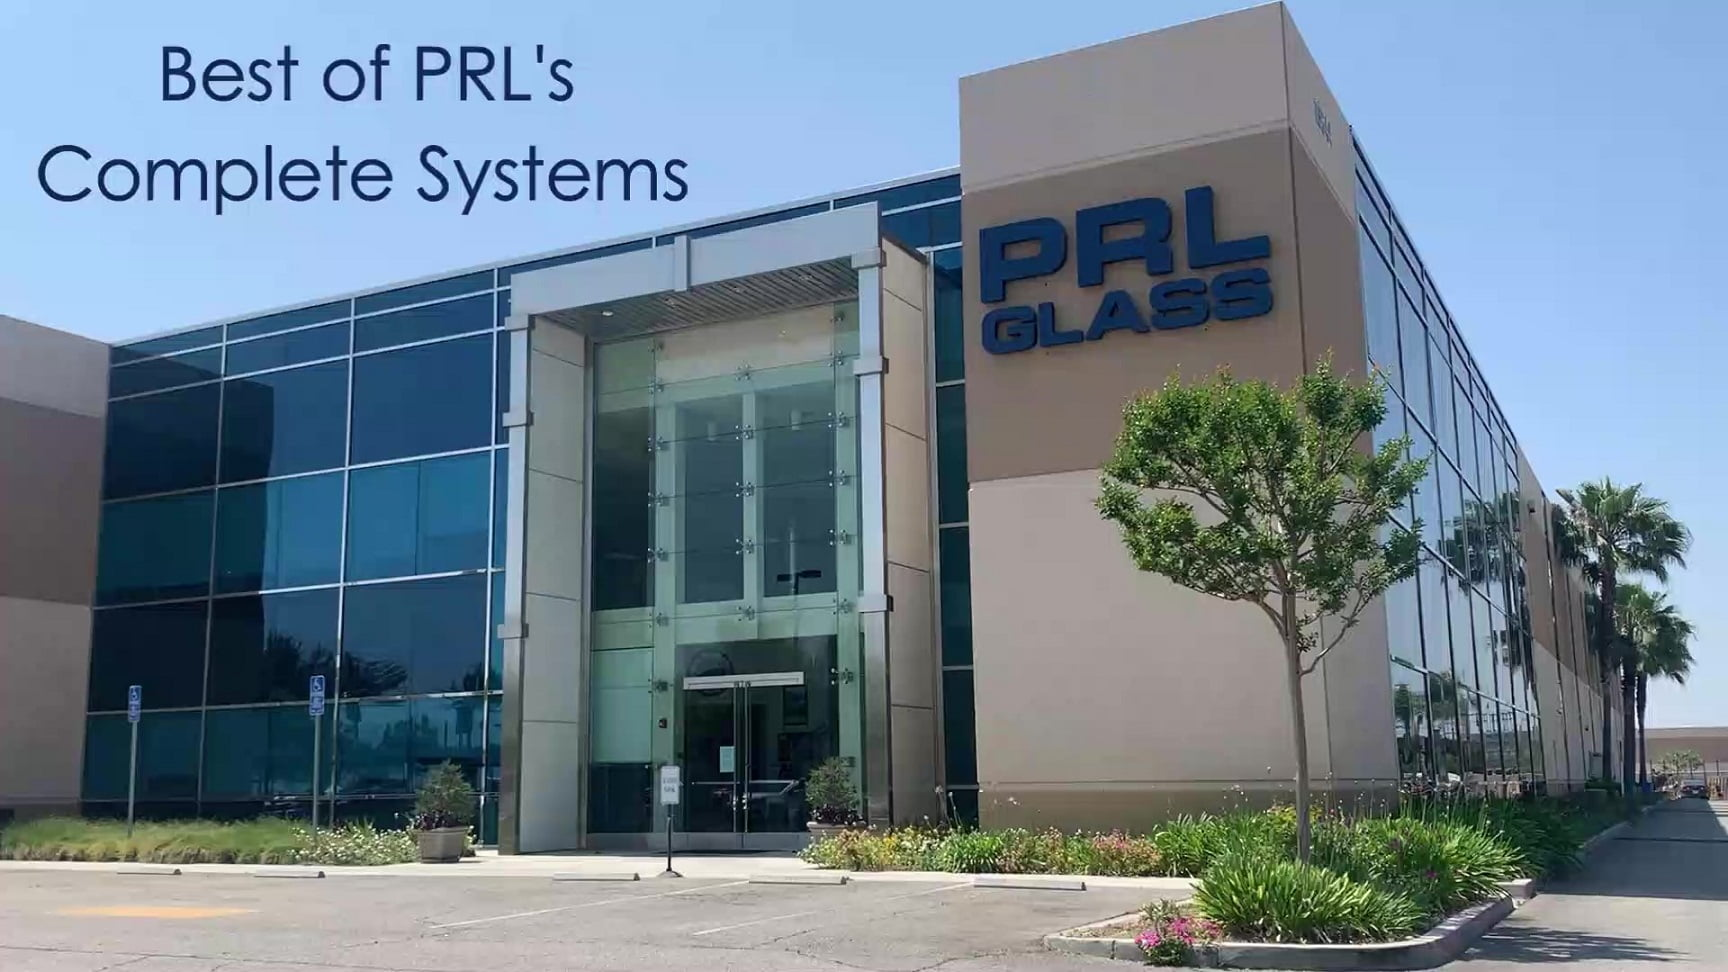 Best of PRL's Product Lines 2021 Video